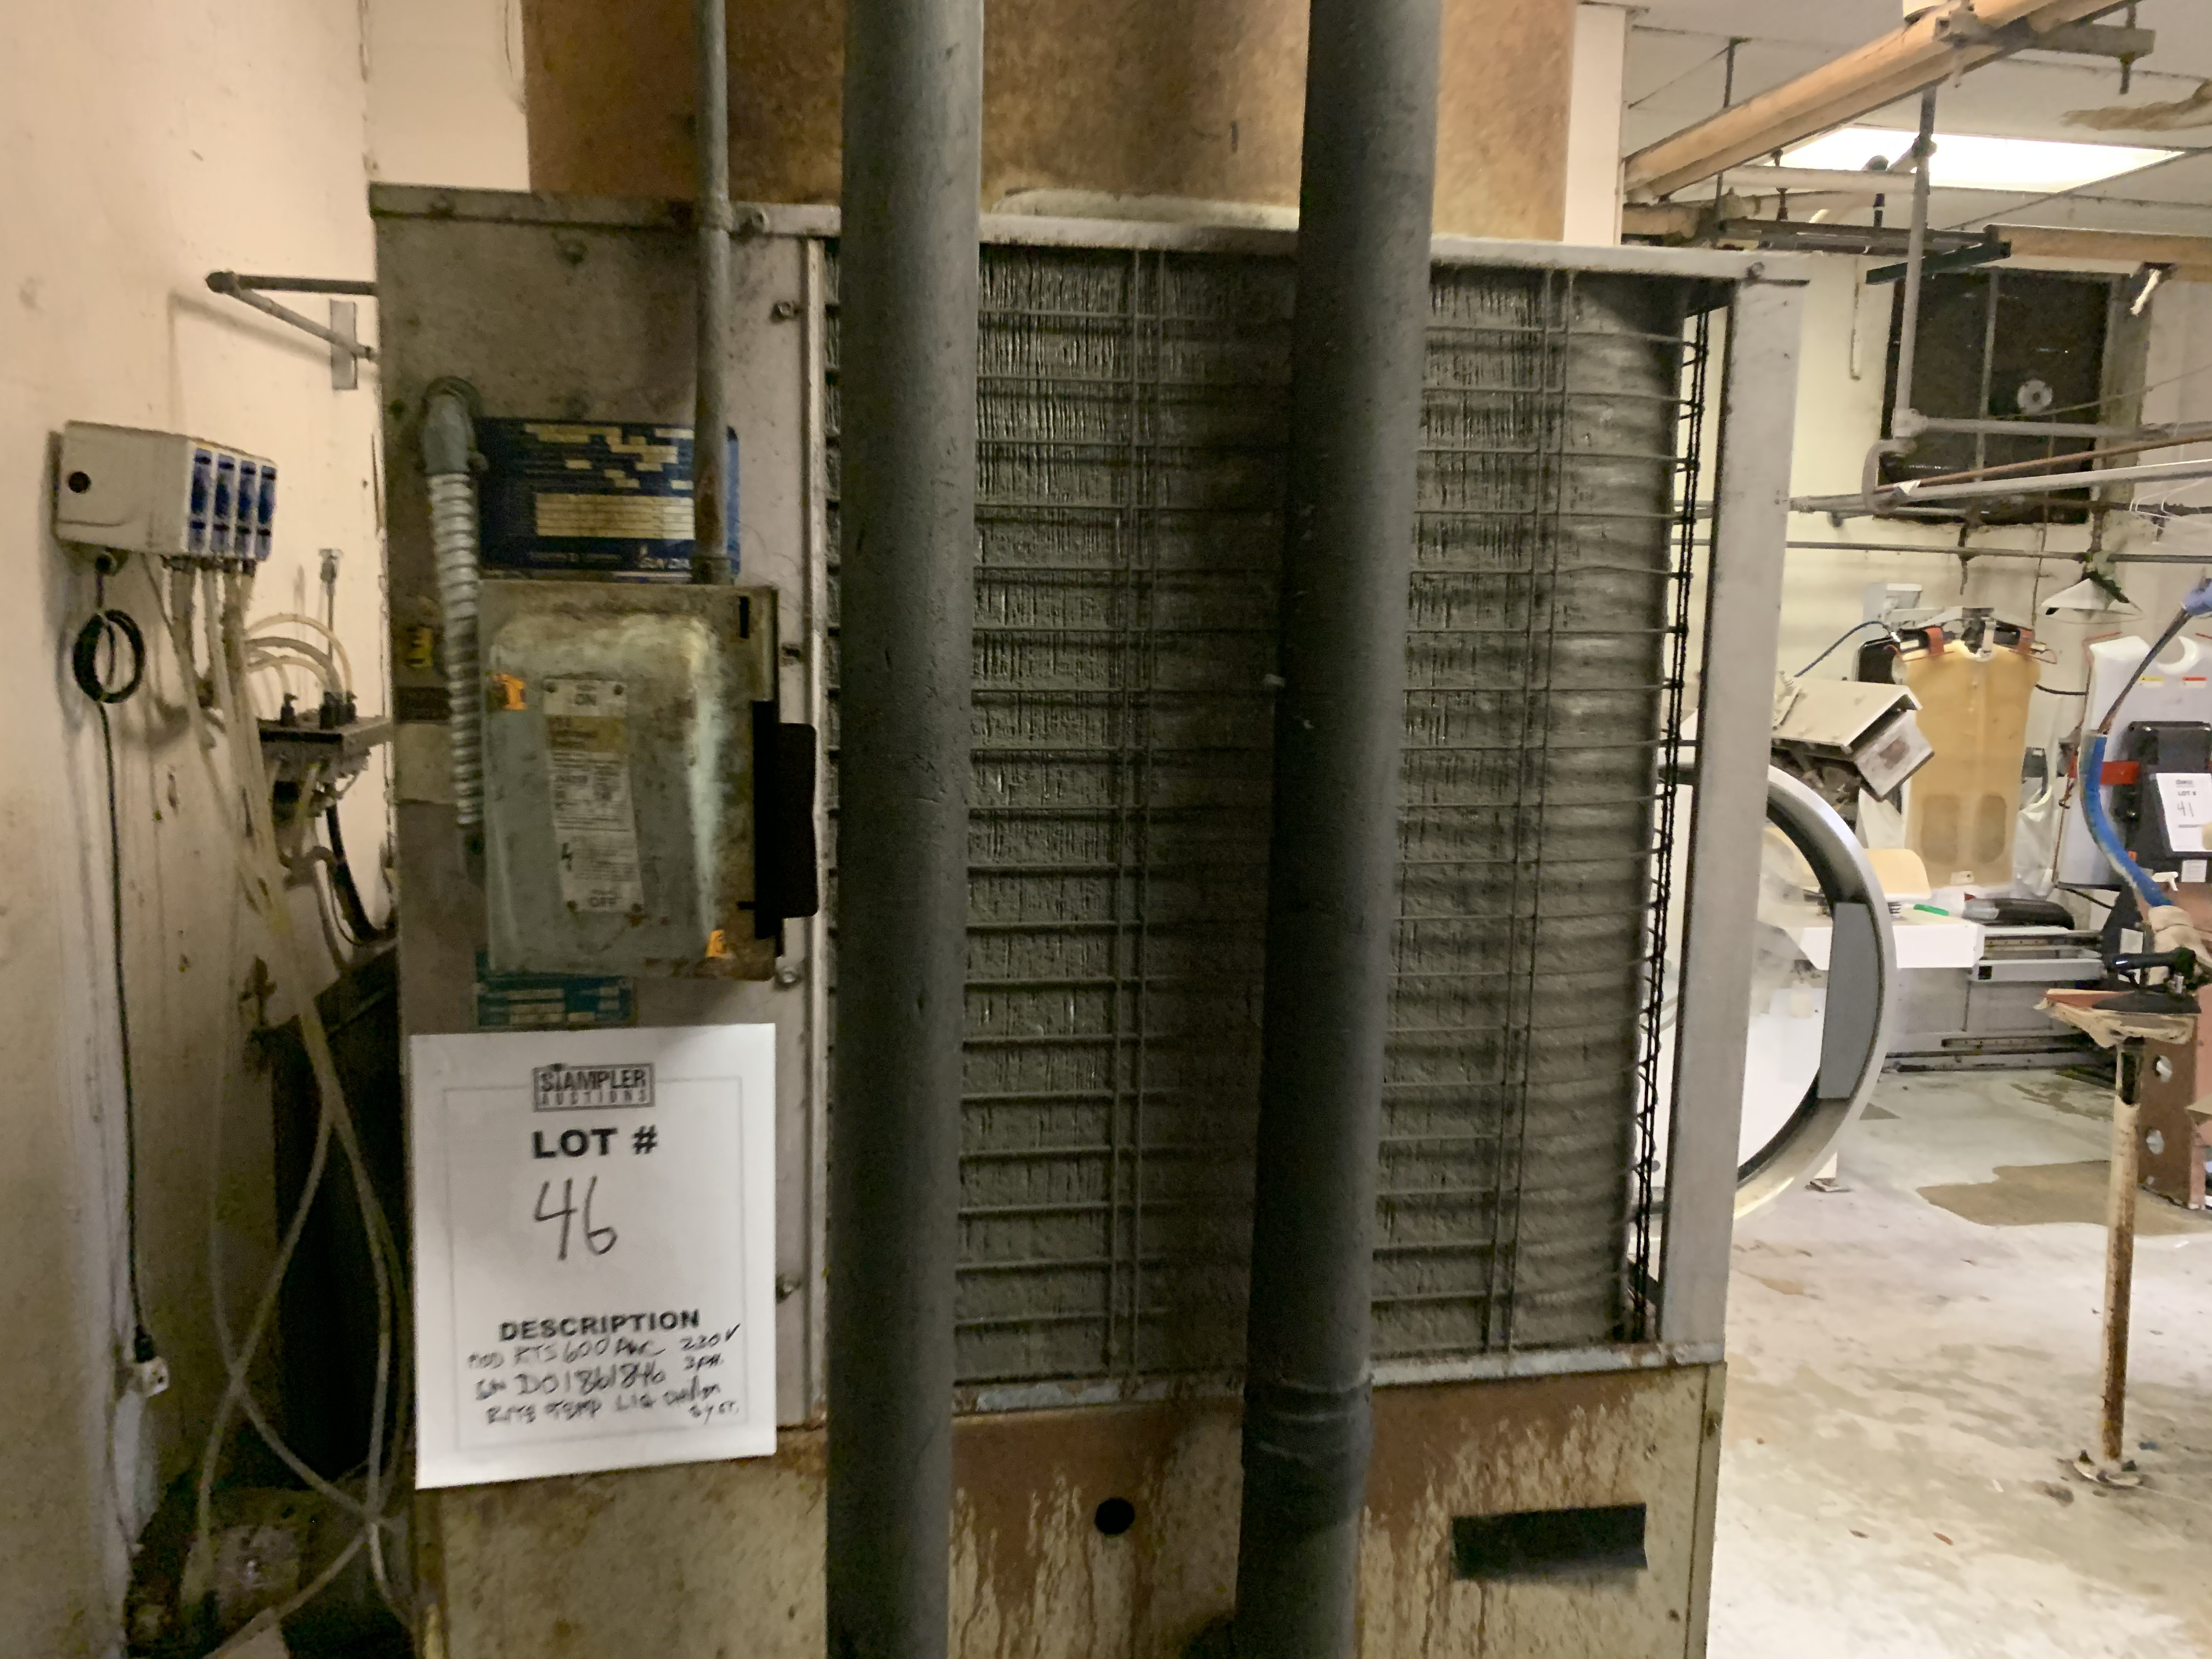 RITE-TEMP RTS-600ANC LIQUID CHILLER SYSTEM - 230 VOLT / 3 PHASE - SERIAL No. D001861846 - Image 2 of 7